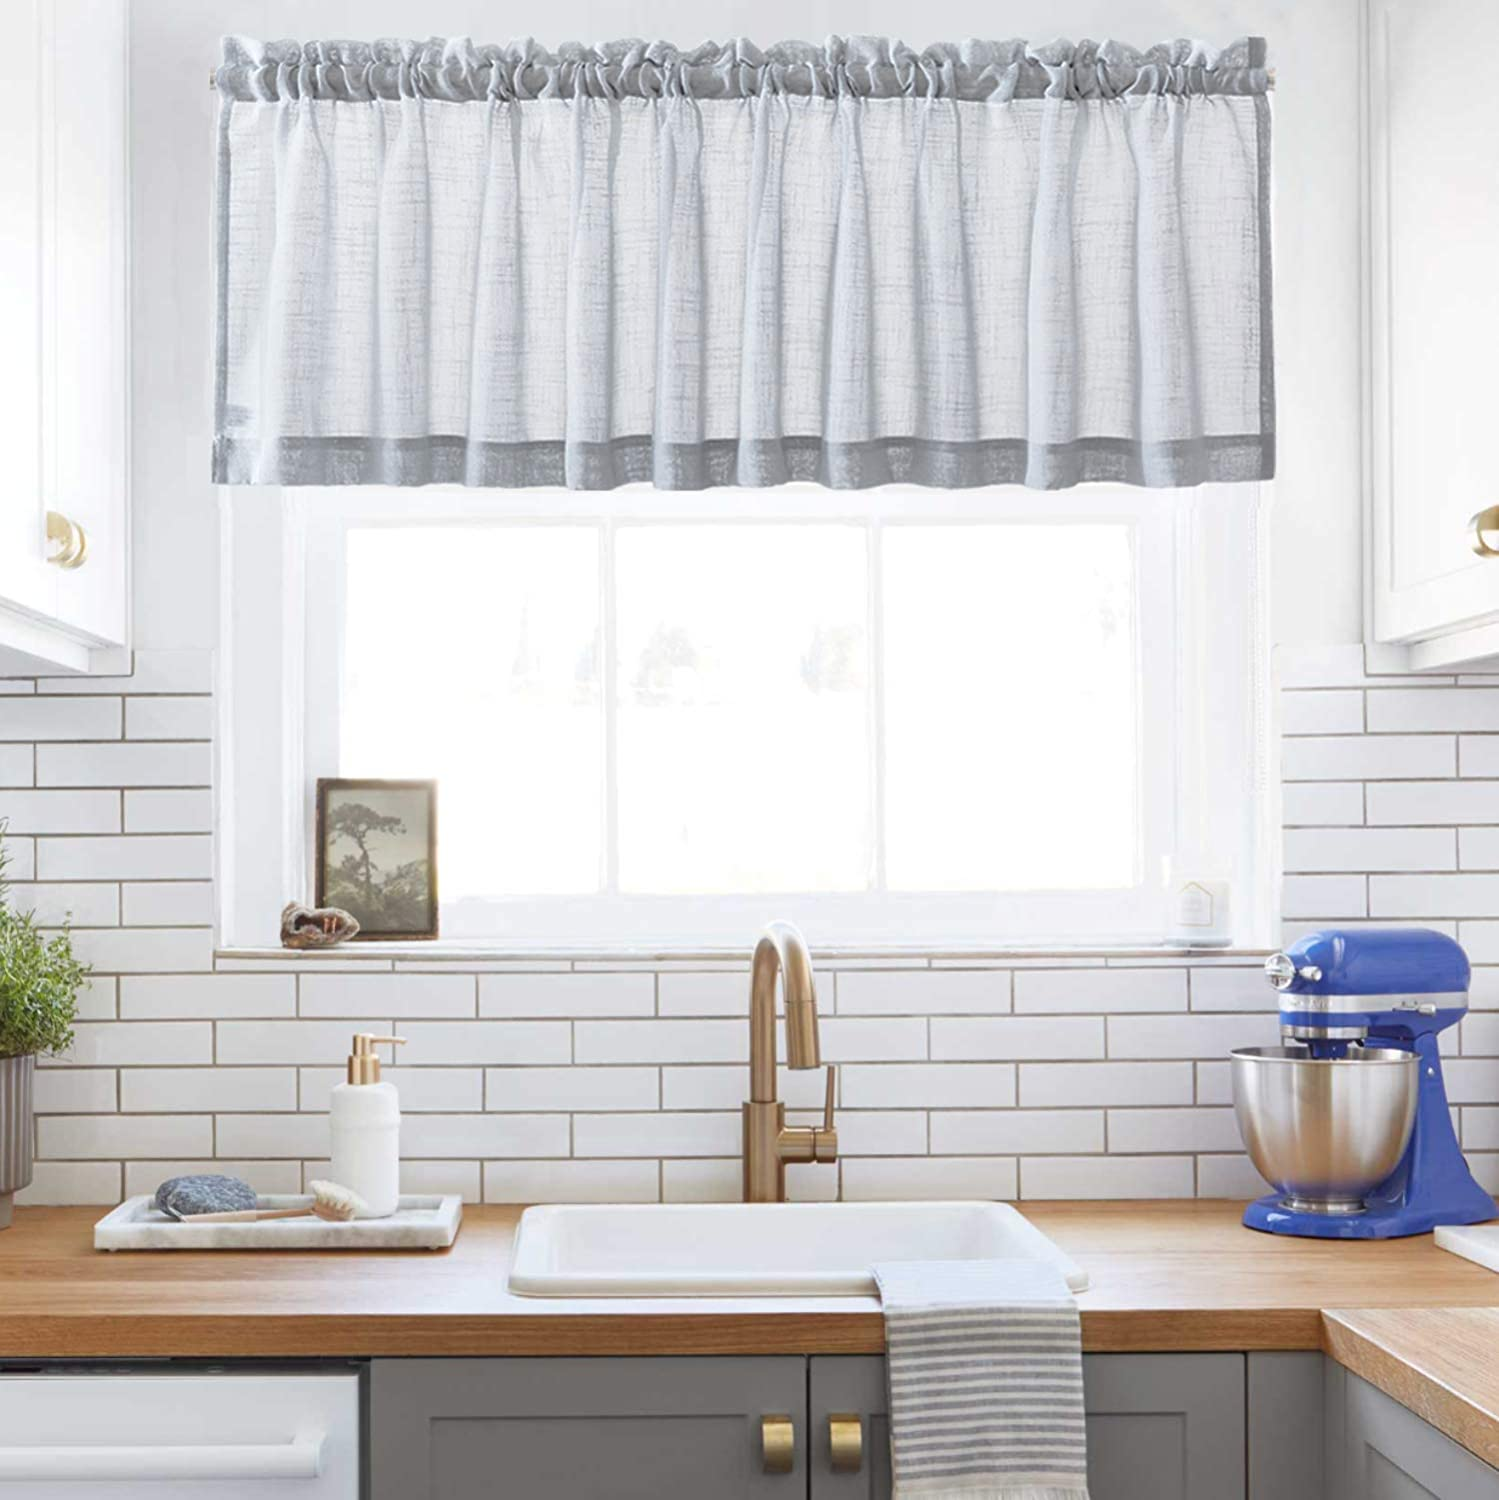 Amazon Com Grey Sheer Curtains Valance Semi Sheer Window Curtain For Kitchen Cafe Half Window Curtains Rod Pocket W60 X L16 1 Panel Kitchen Dining